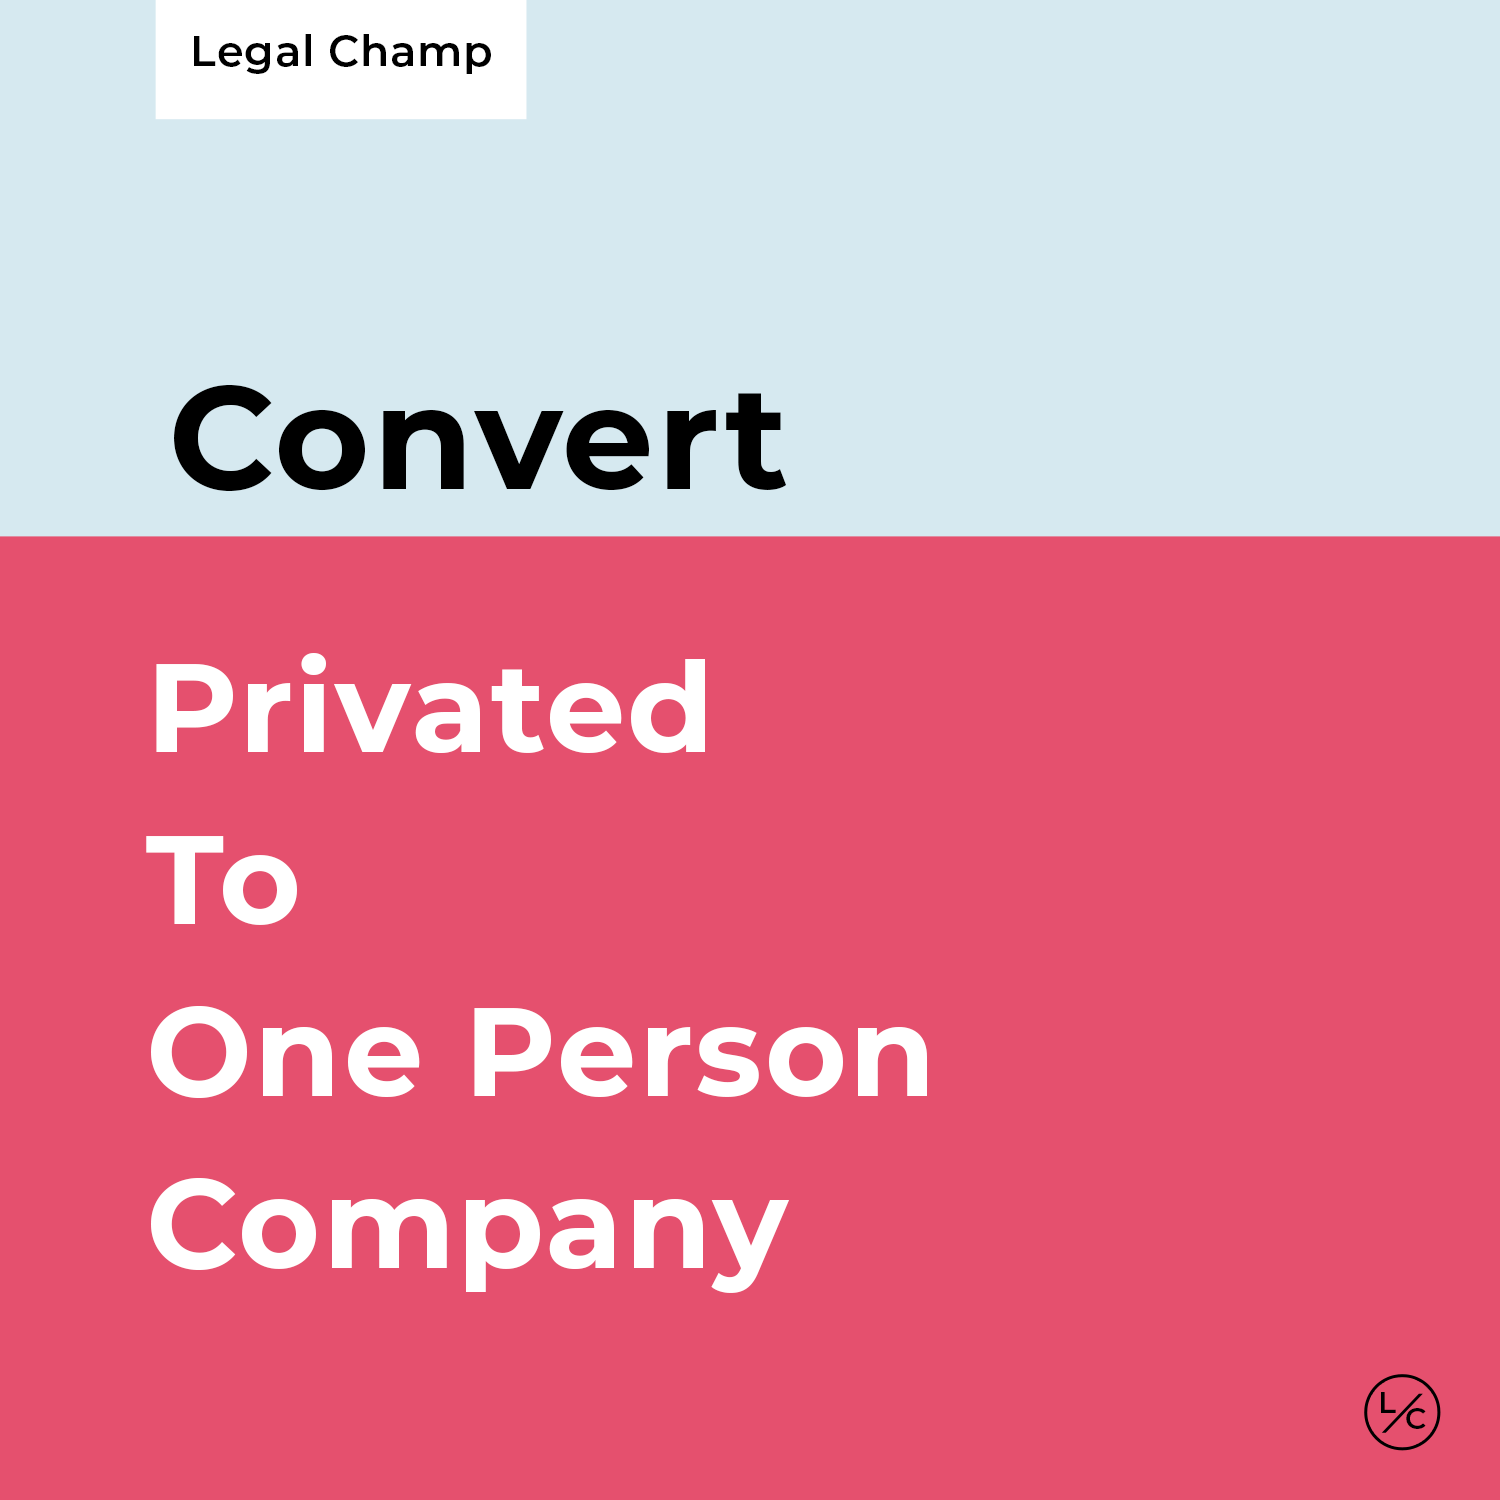 Private To One Person Company